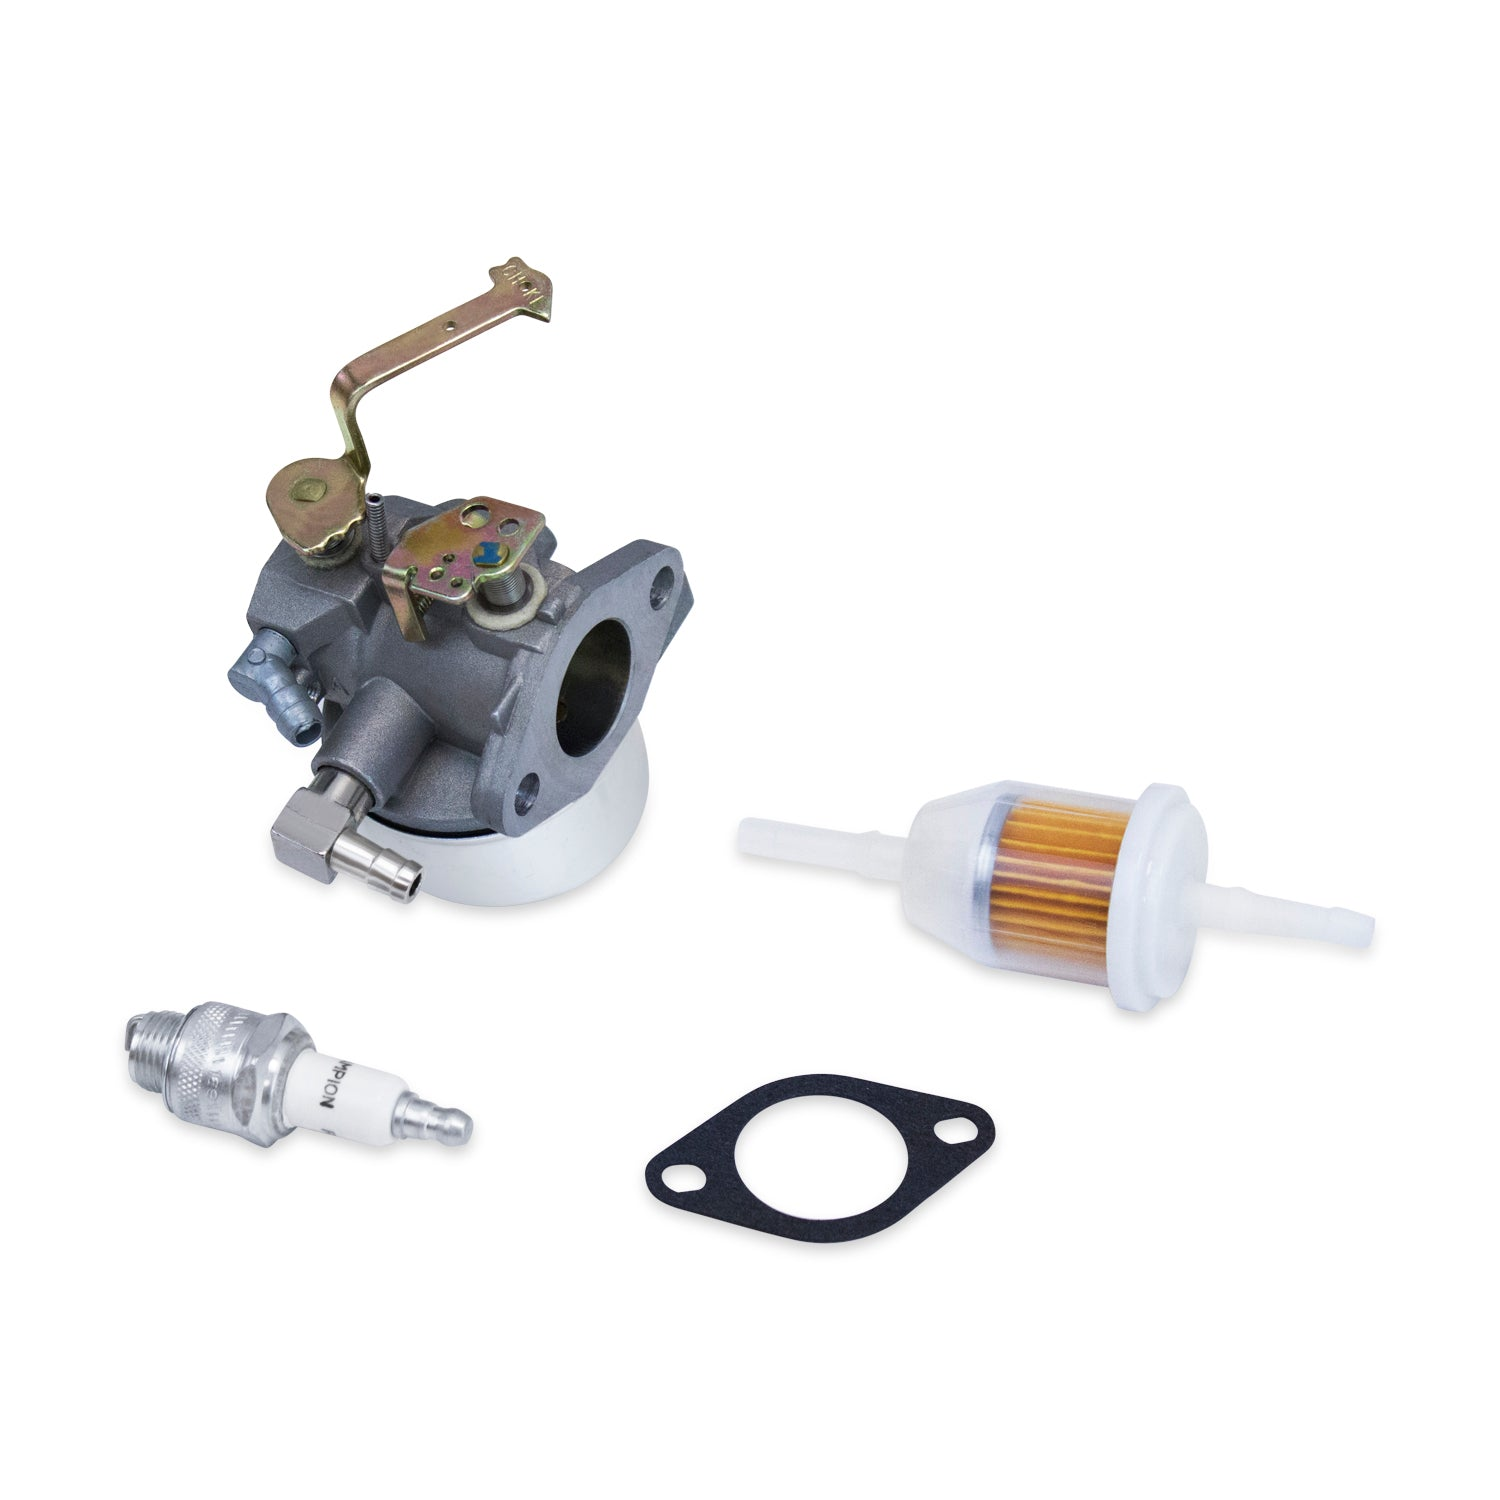 carburetor spark plug fuel filter fits some tecumseh lh358ea 340260b 632689 Tecumseh Hm100 Owner's Manual